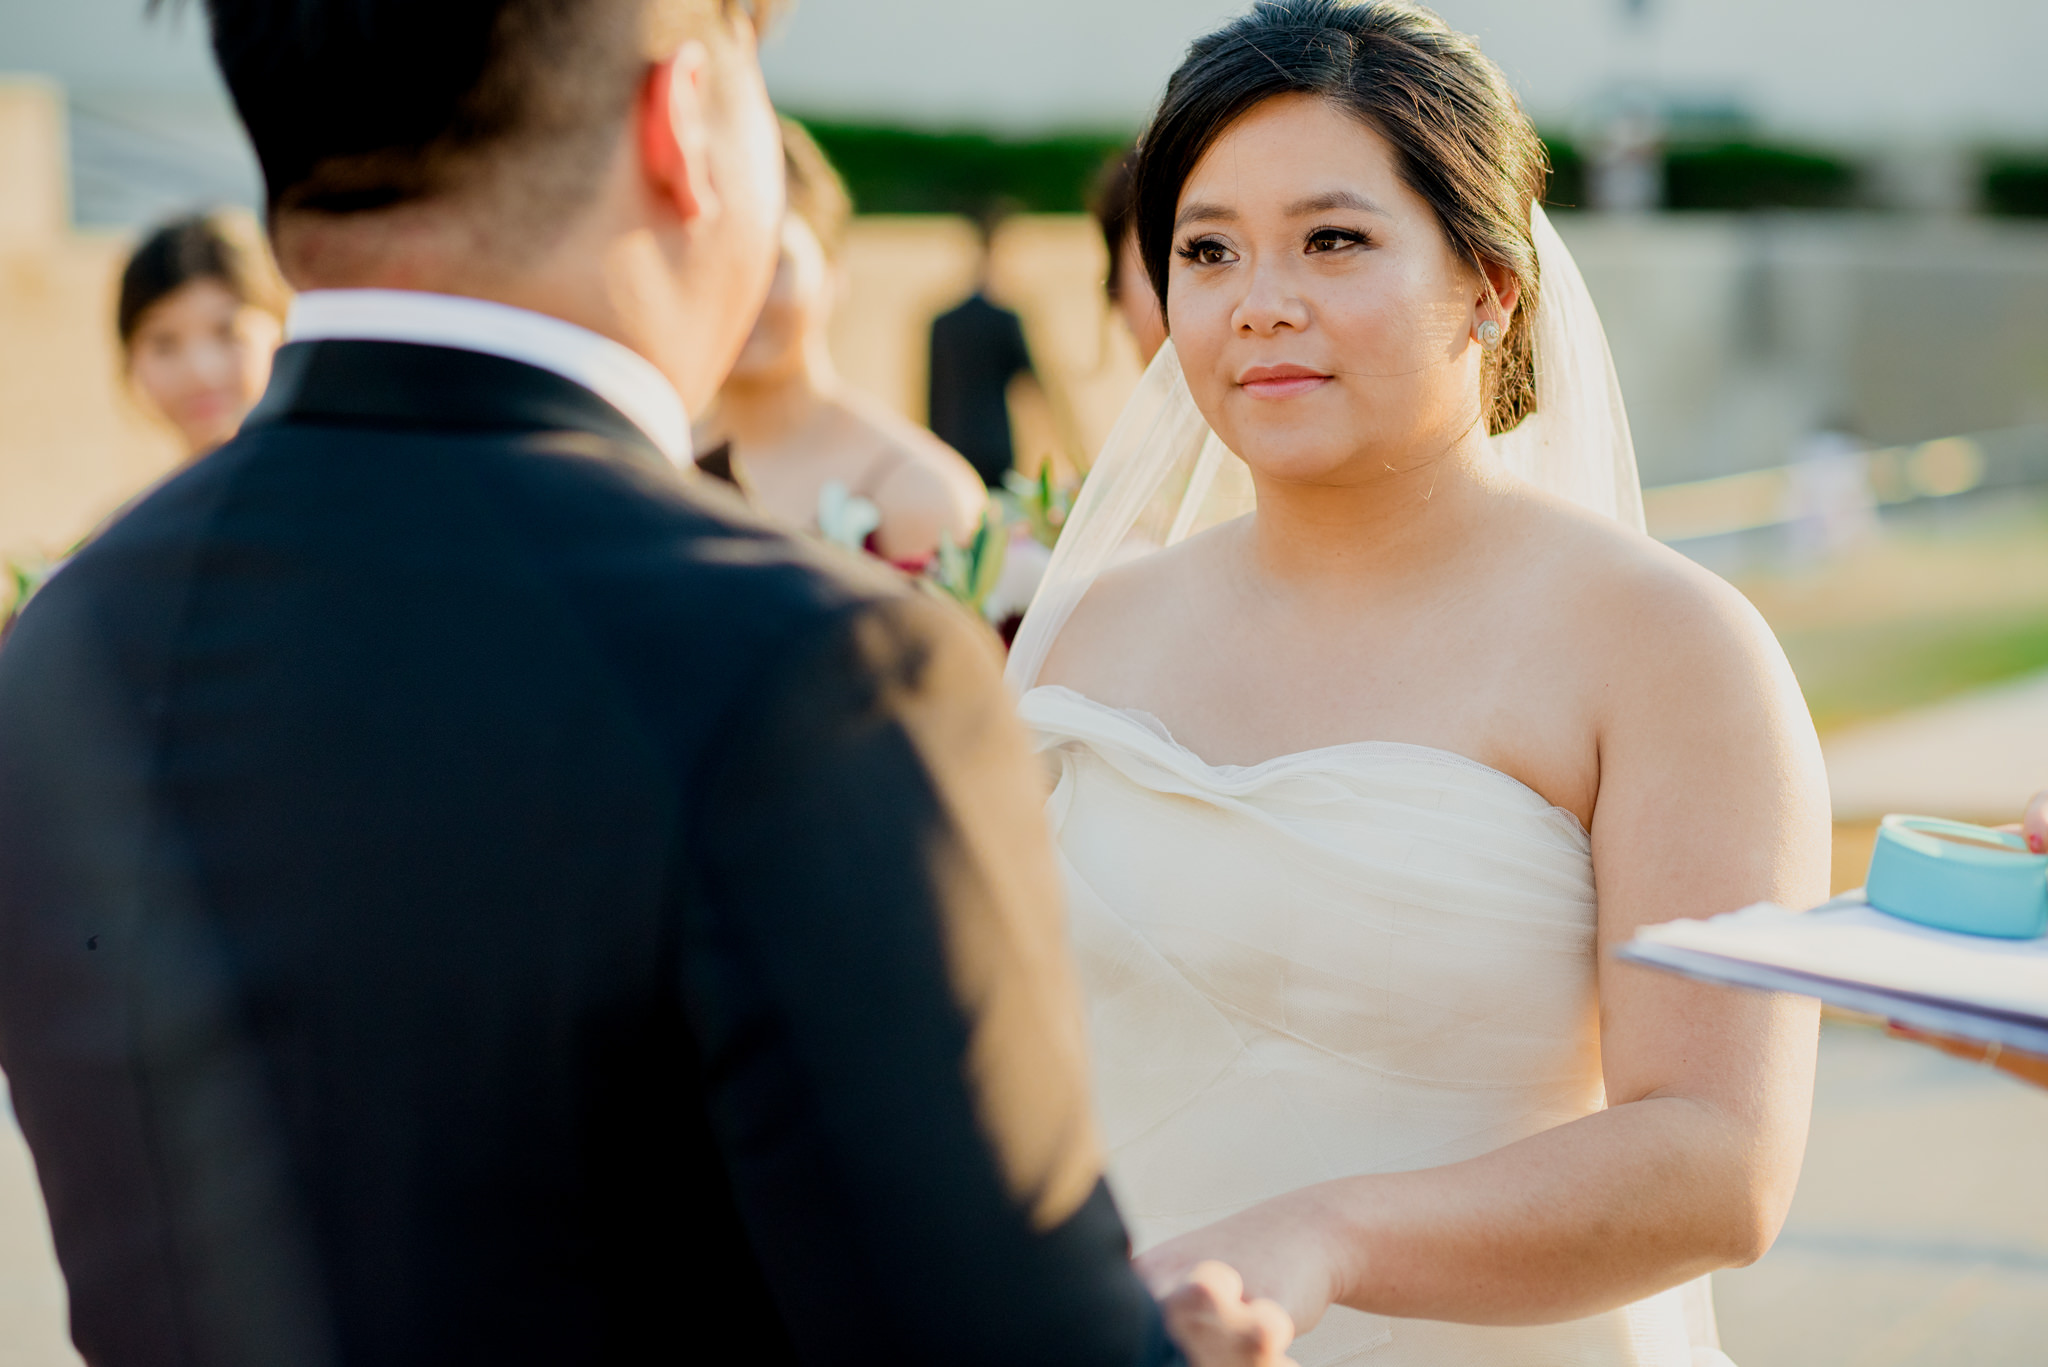 Asian bride looks lovingly at her groom.